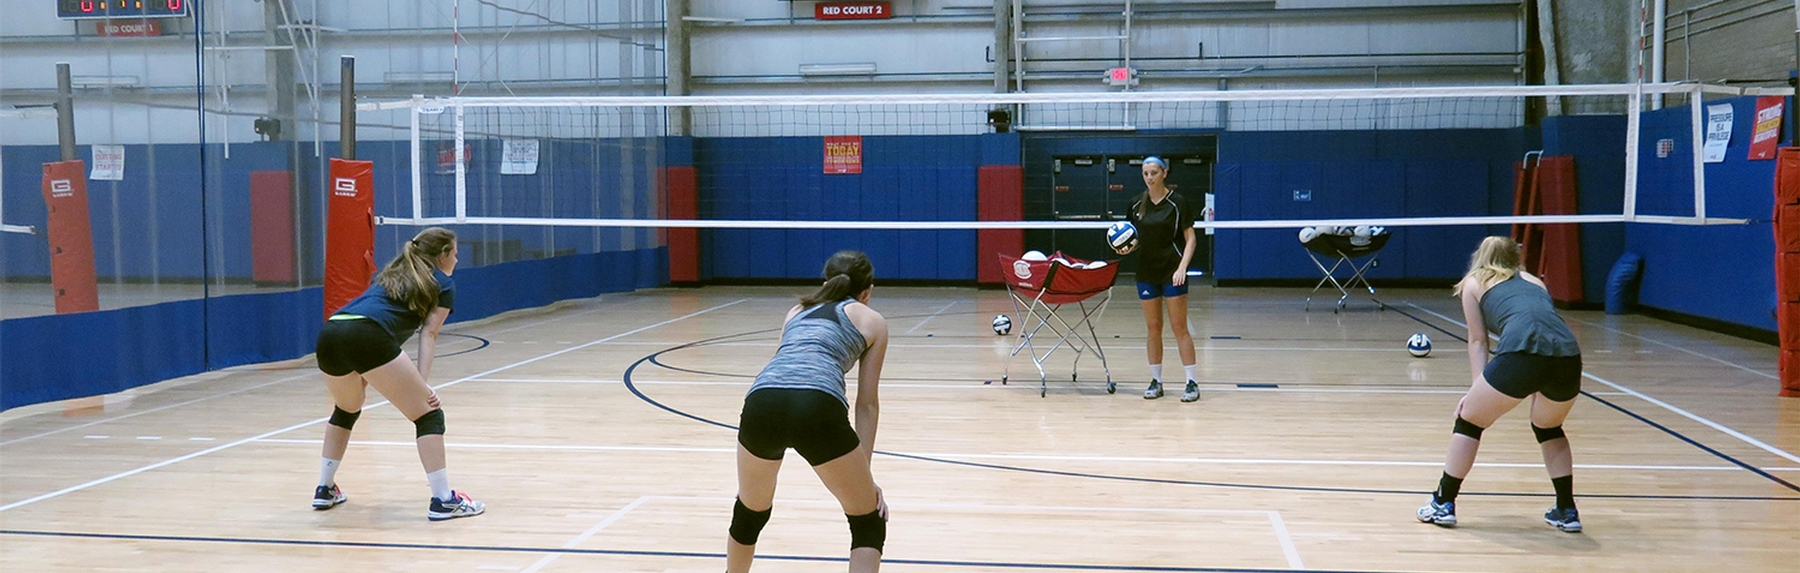 Volleyball Youth Adult Leagues Chelsea Piers Ct Stamford Ct Chelsea Piers Connecticut Stamford Ct